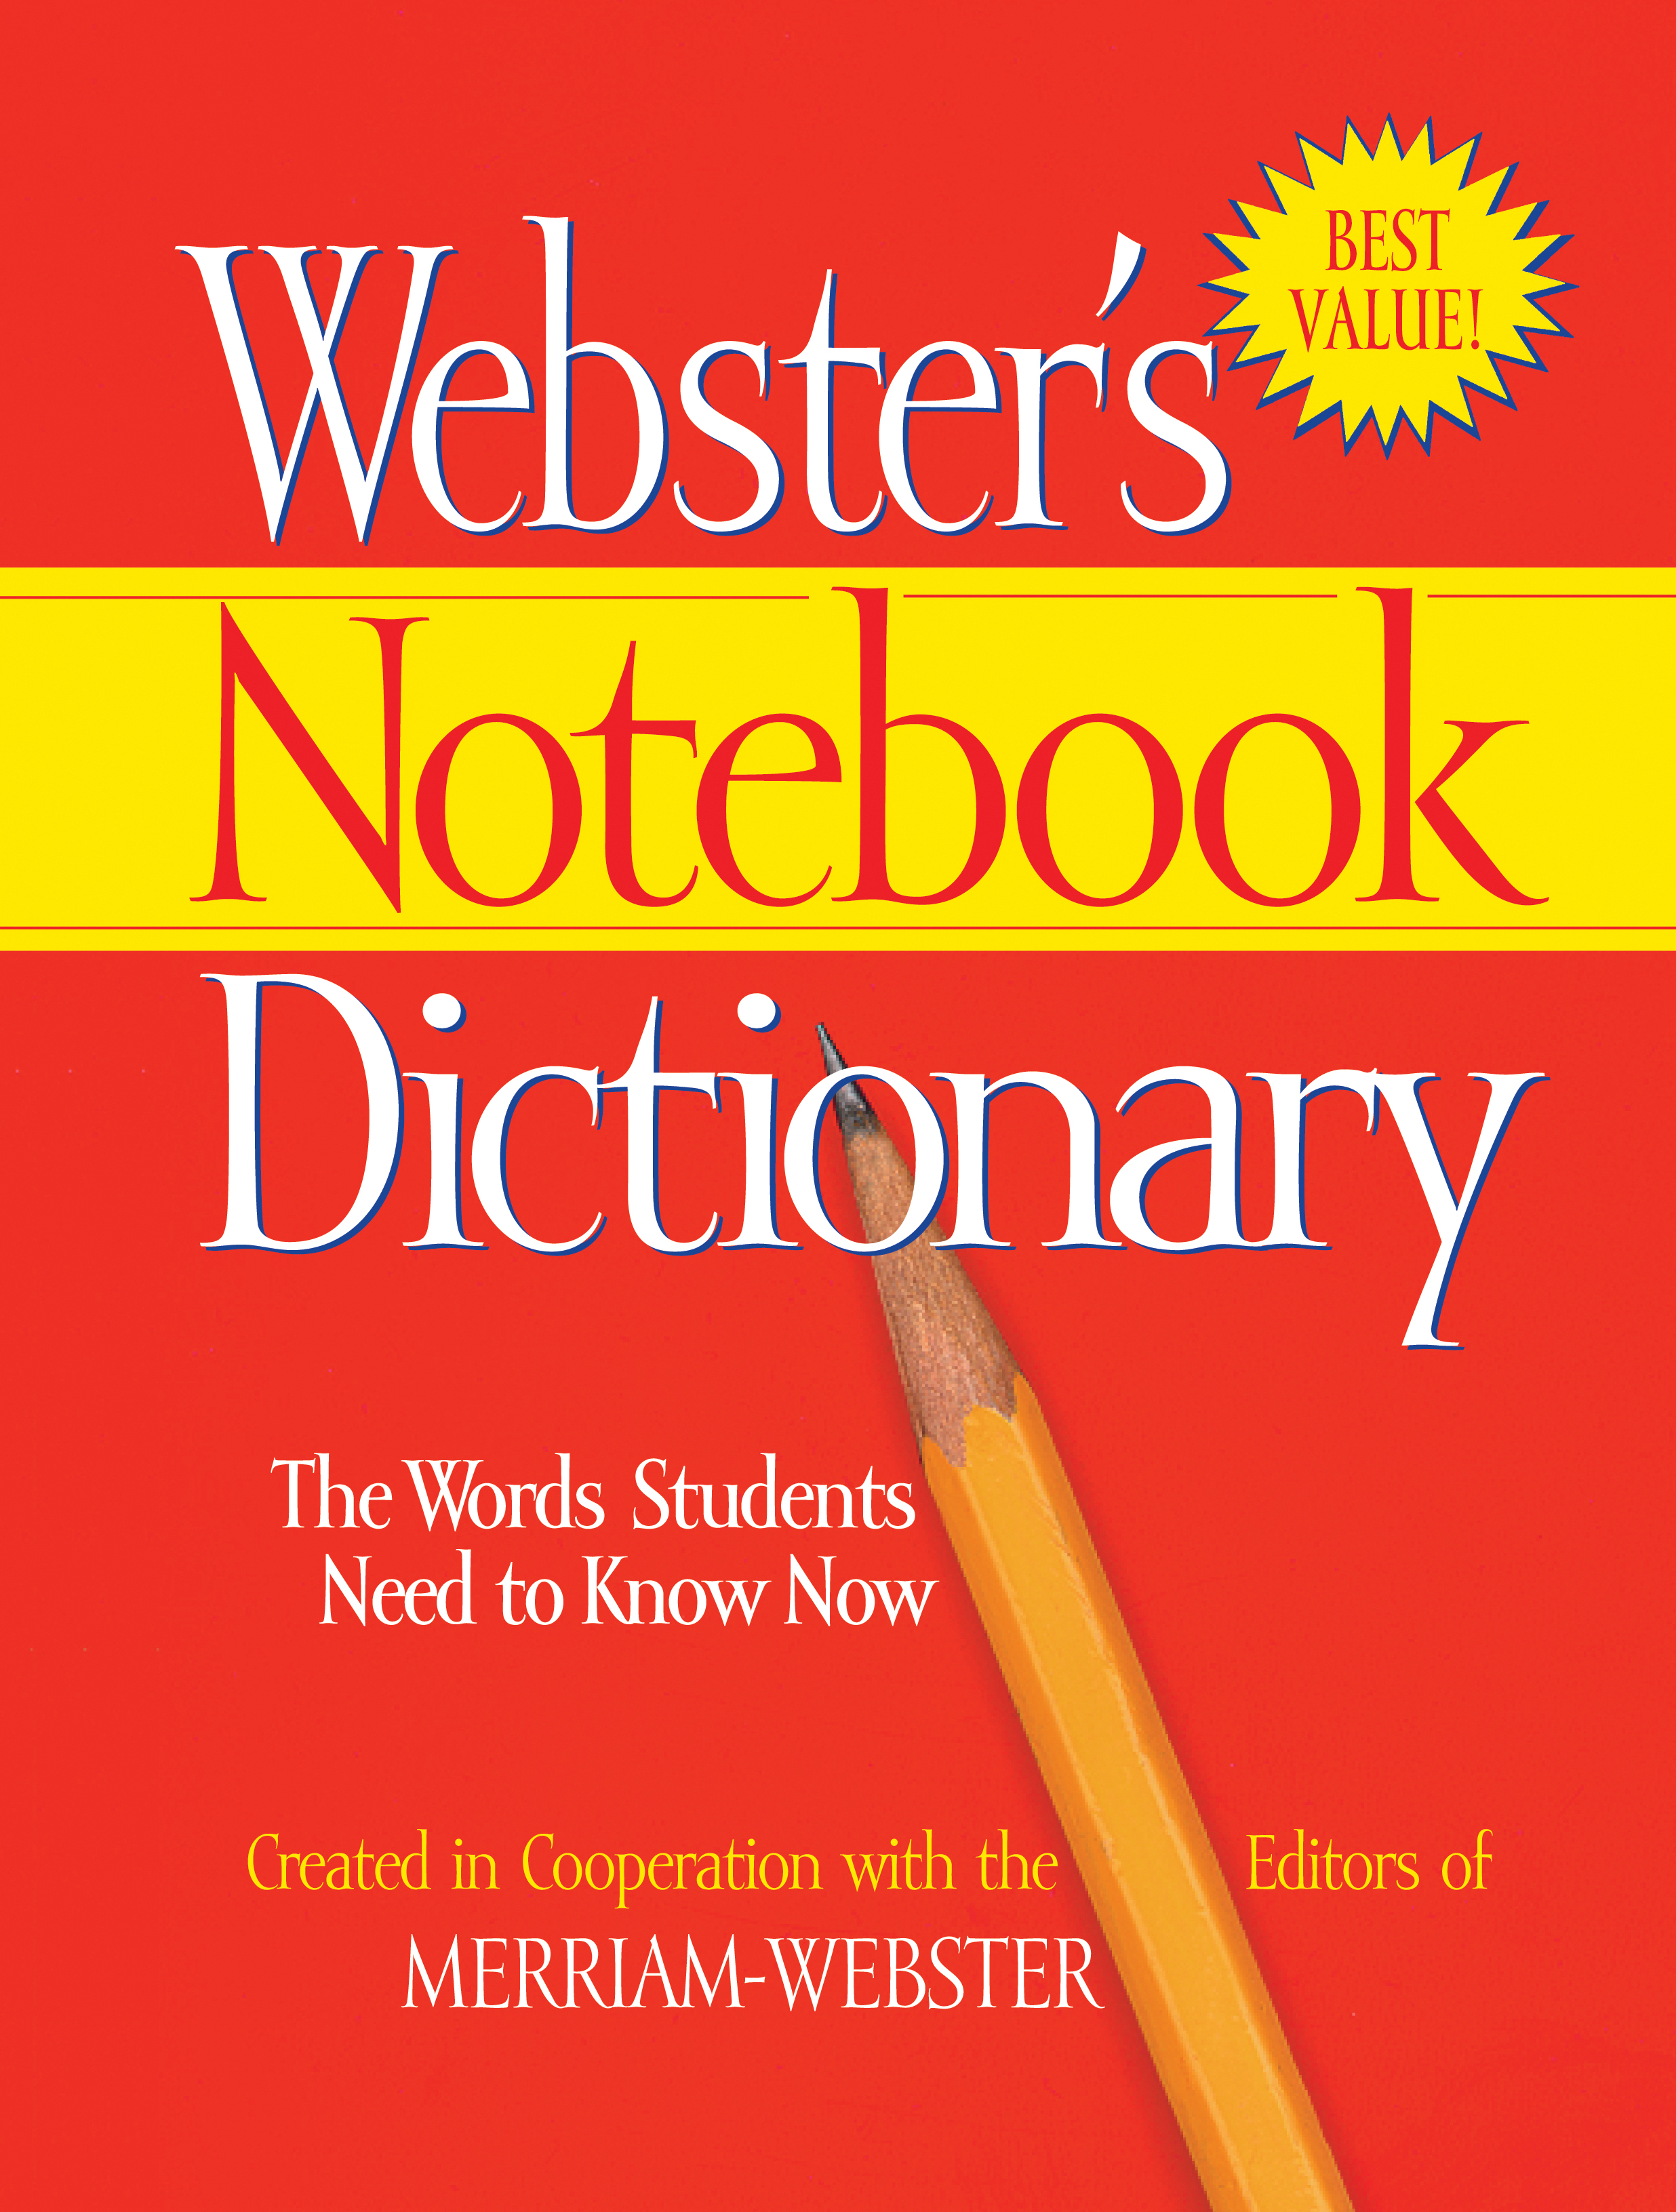 How To Make A Jpeg Book Cover : Webster s notebook dictionary federal street press